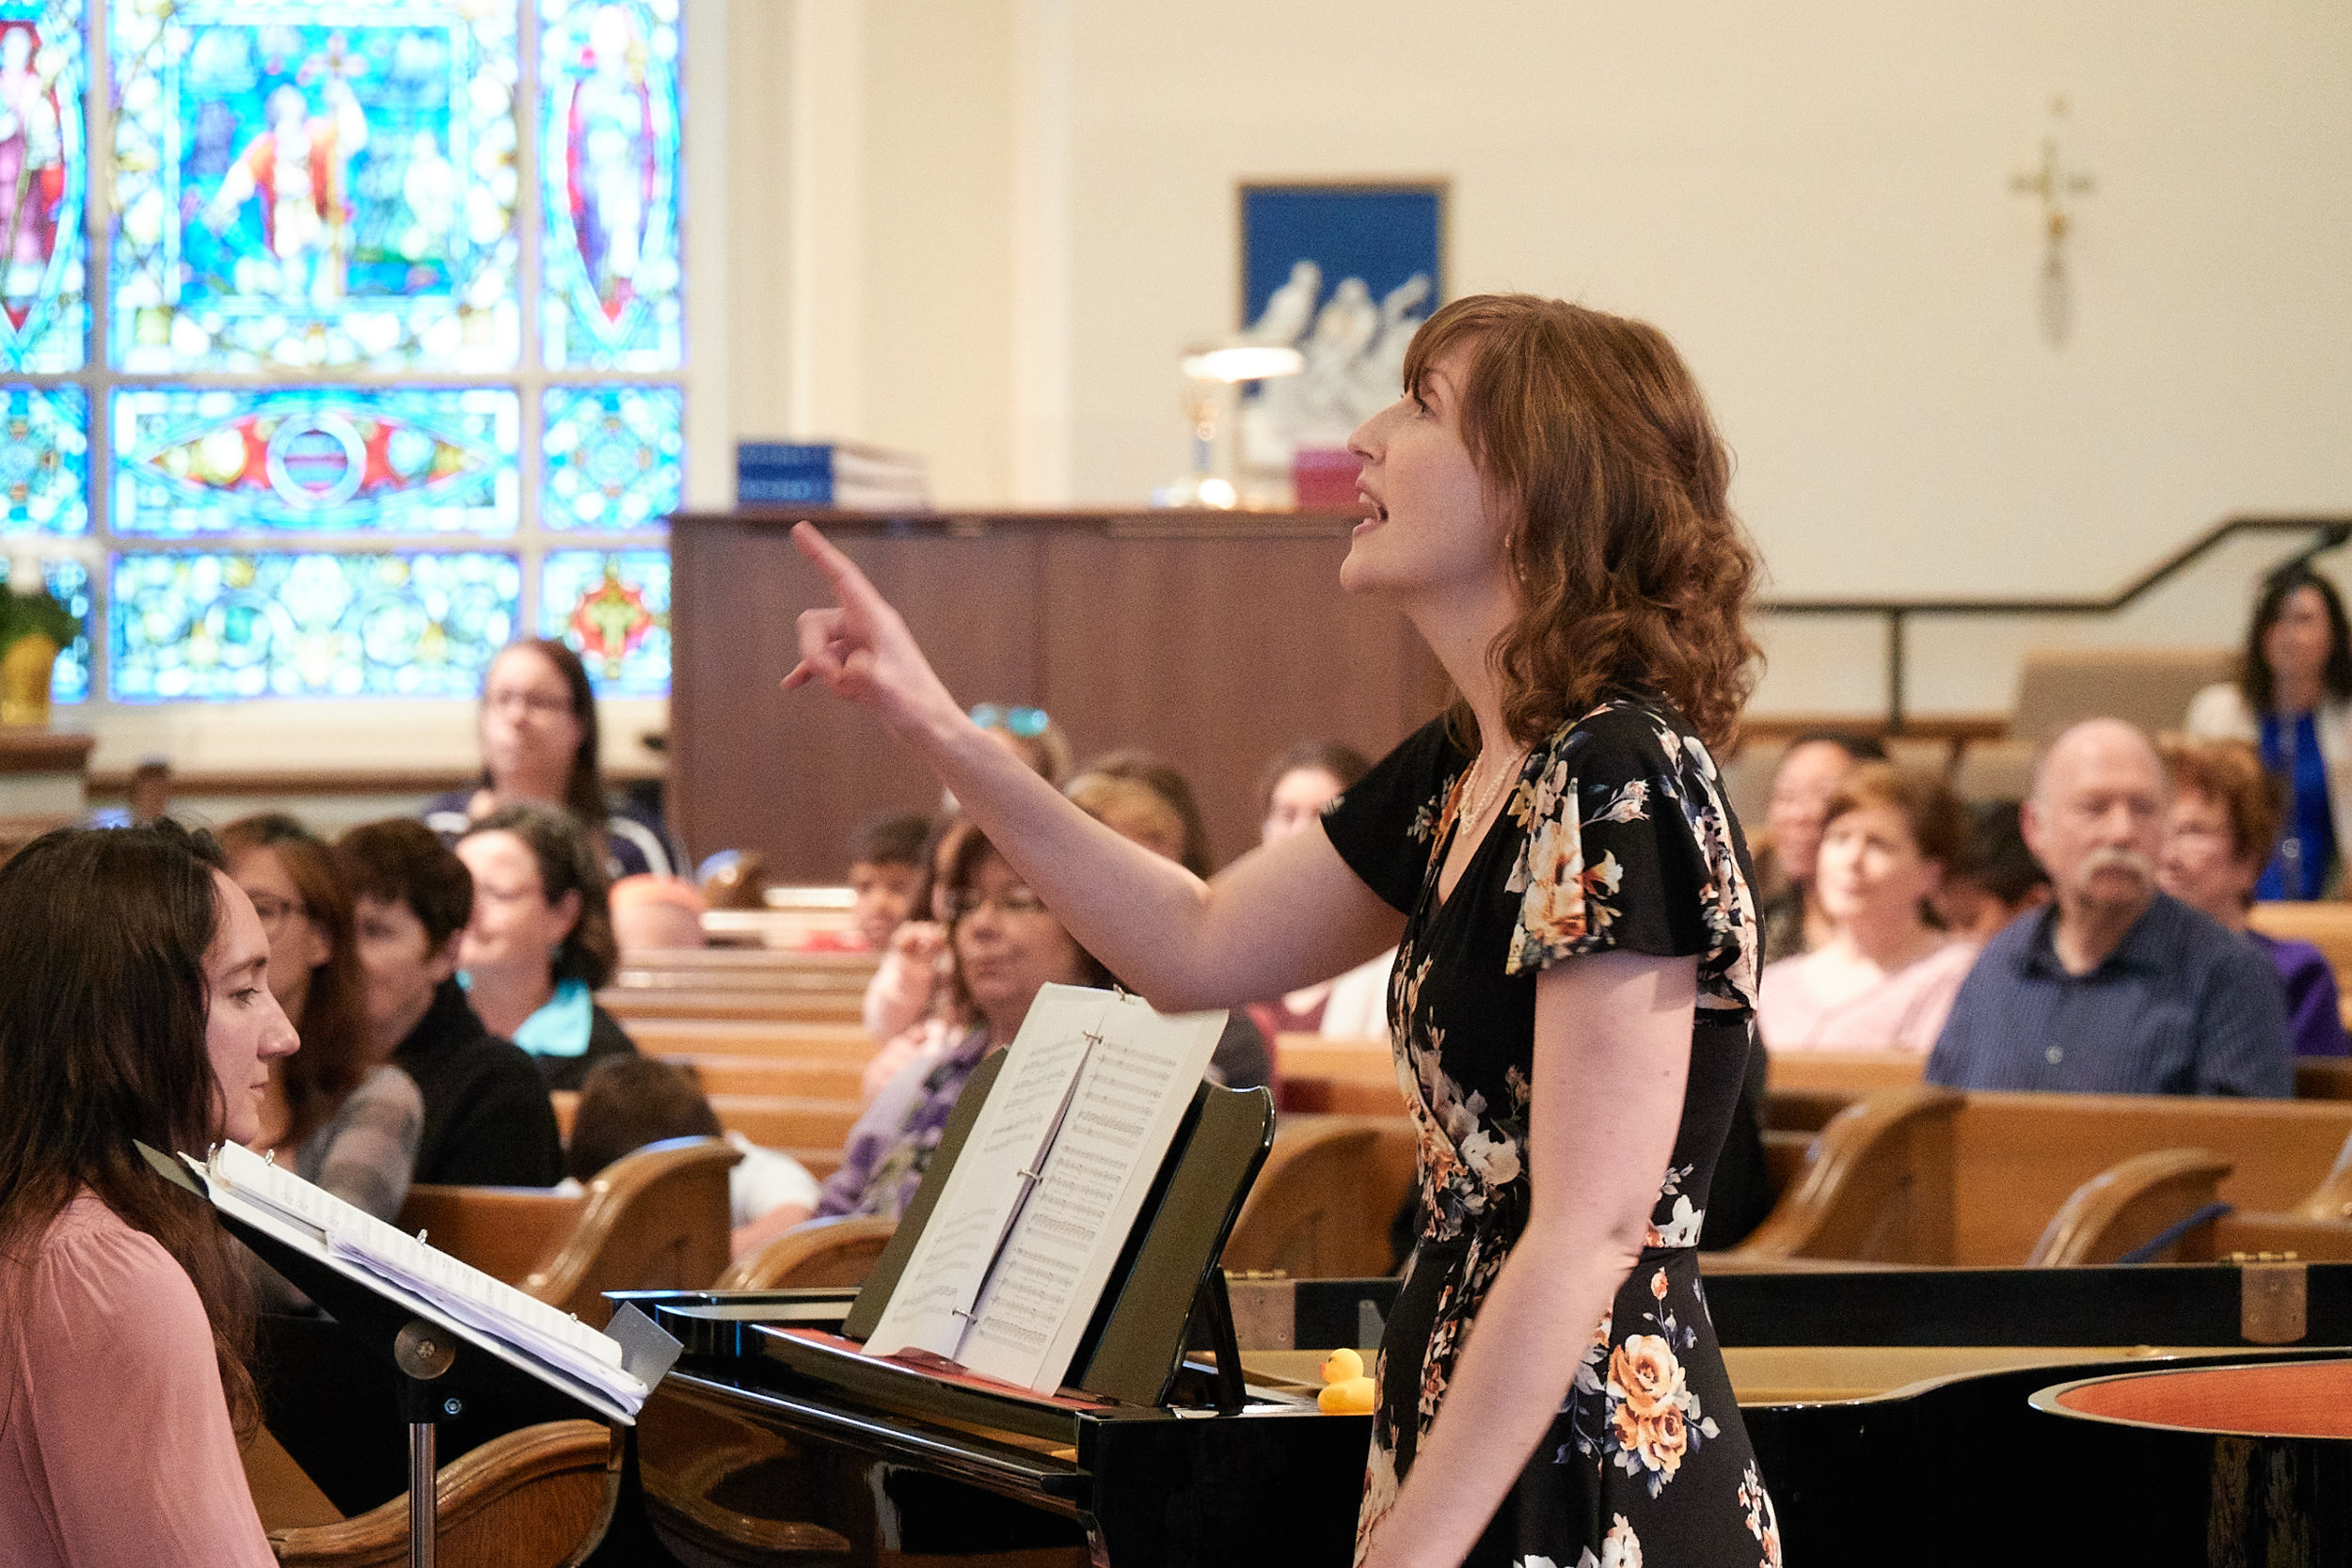 Larissa Sanders, piano, and Heather Adelsberger, conductor